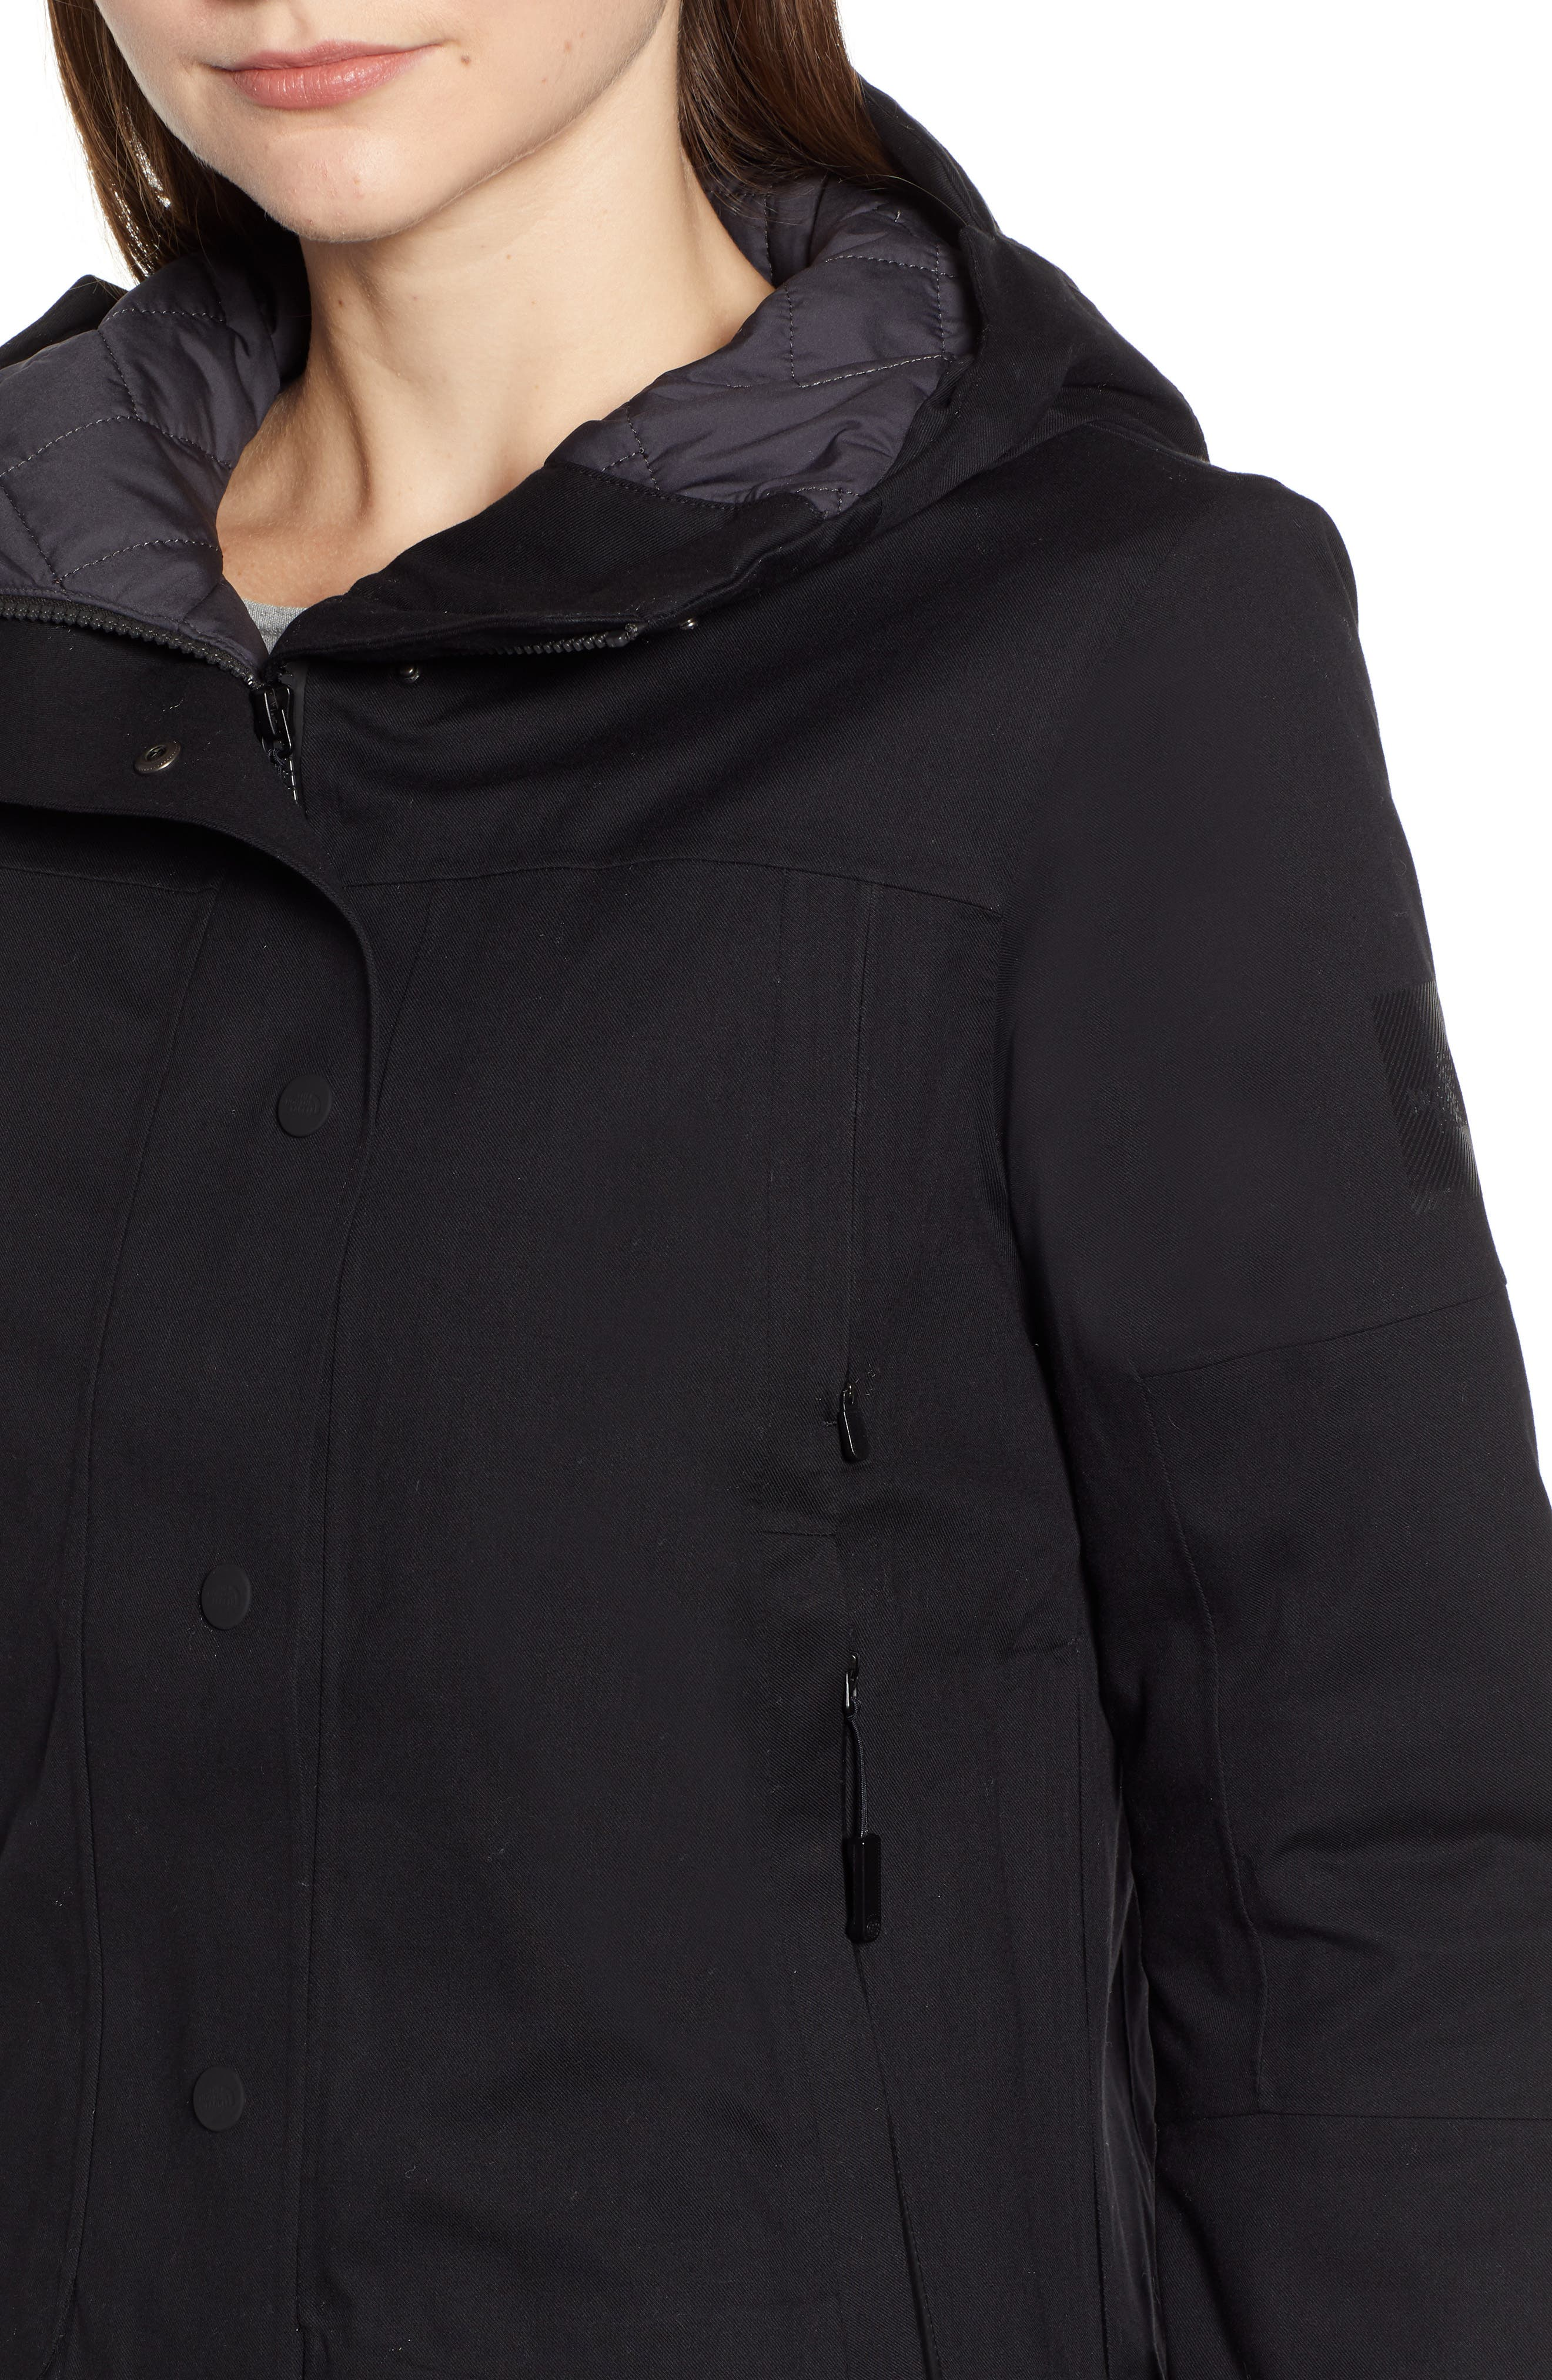 THE NORTH FACE,                             Cryos 2L Mountain Gore-Tex<sup>®</sup> Down Jacket,                             Alternate thumbnail 4, color,                             TNF BLACK